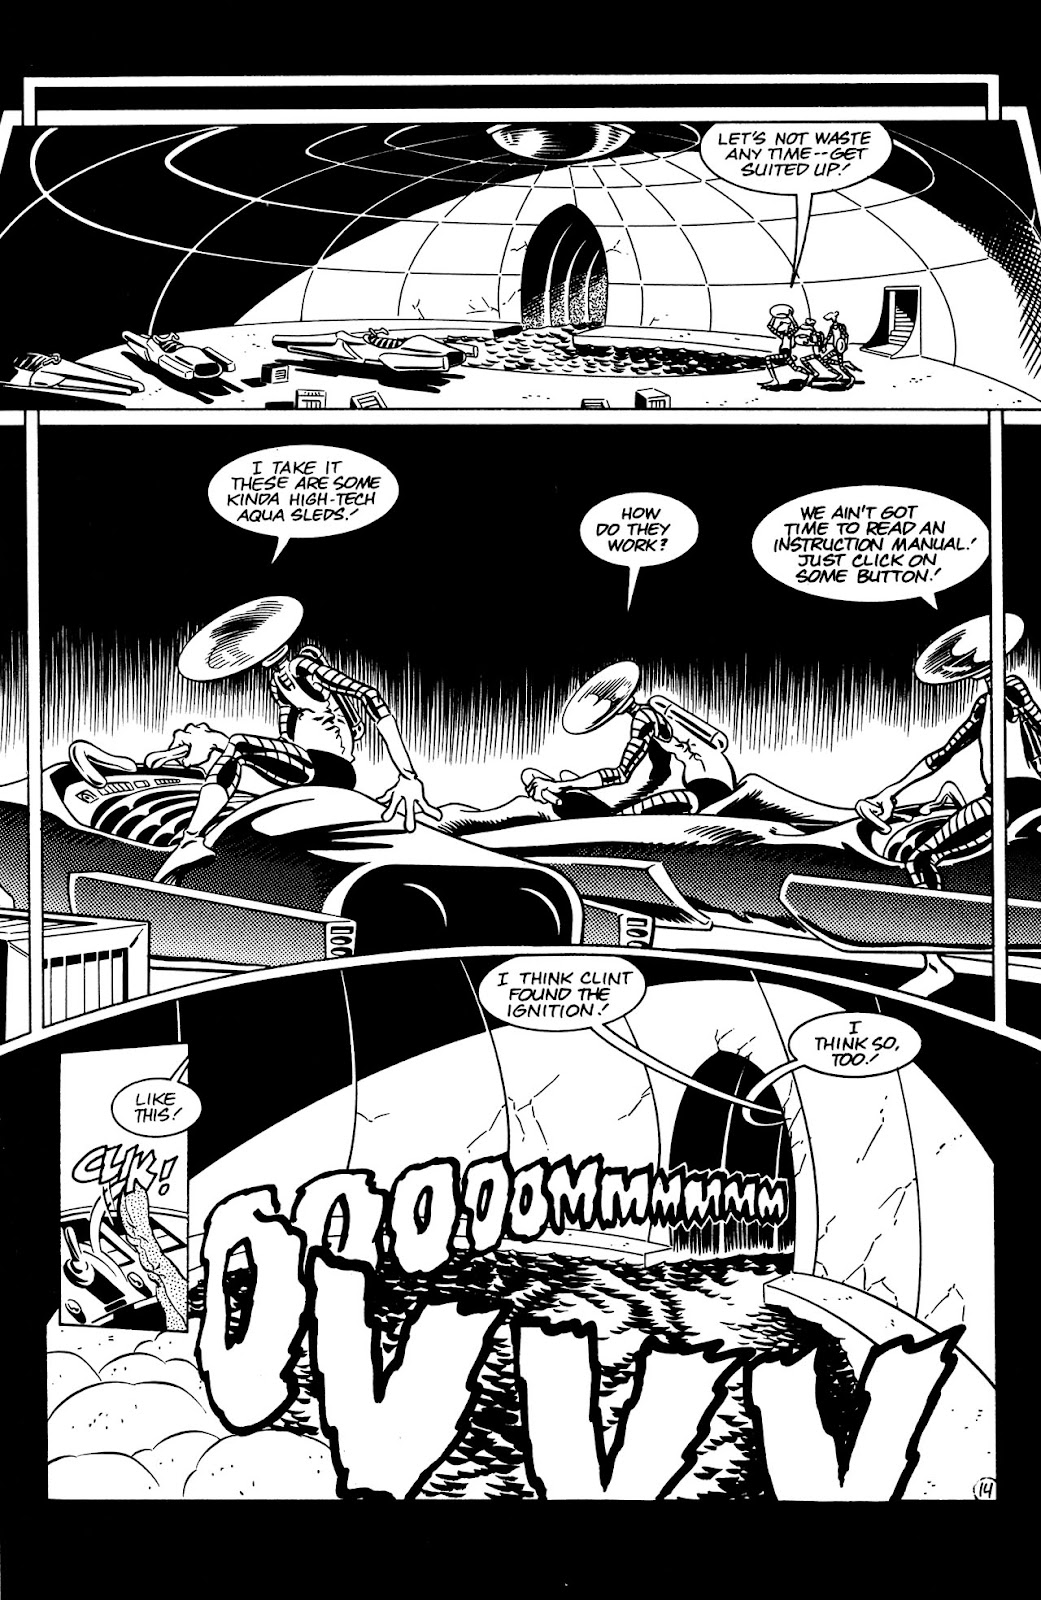 Adolescent Radioactive Black Belt Hamsters (1986) issue 8 - Page 15